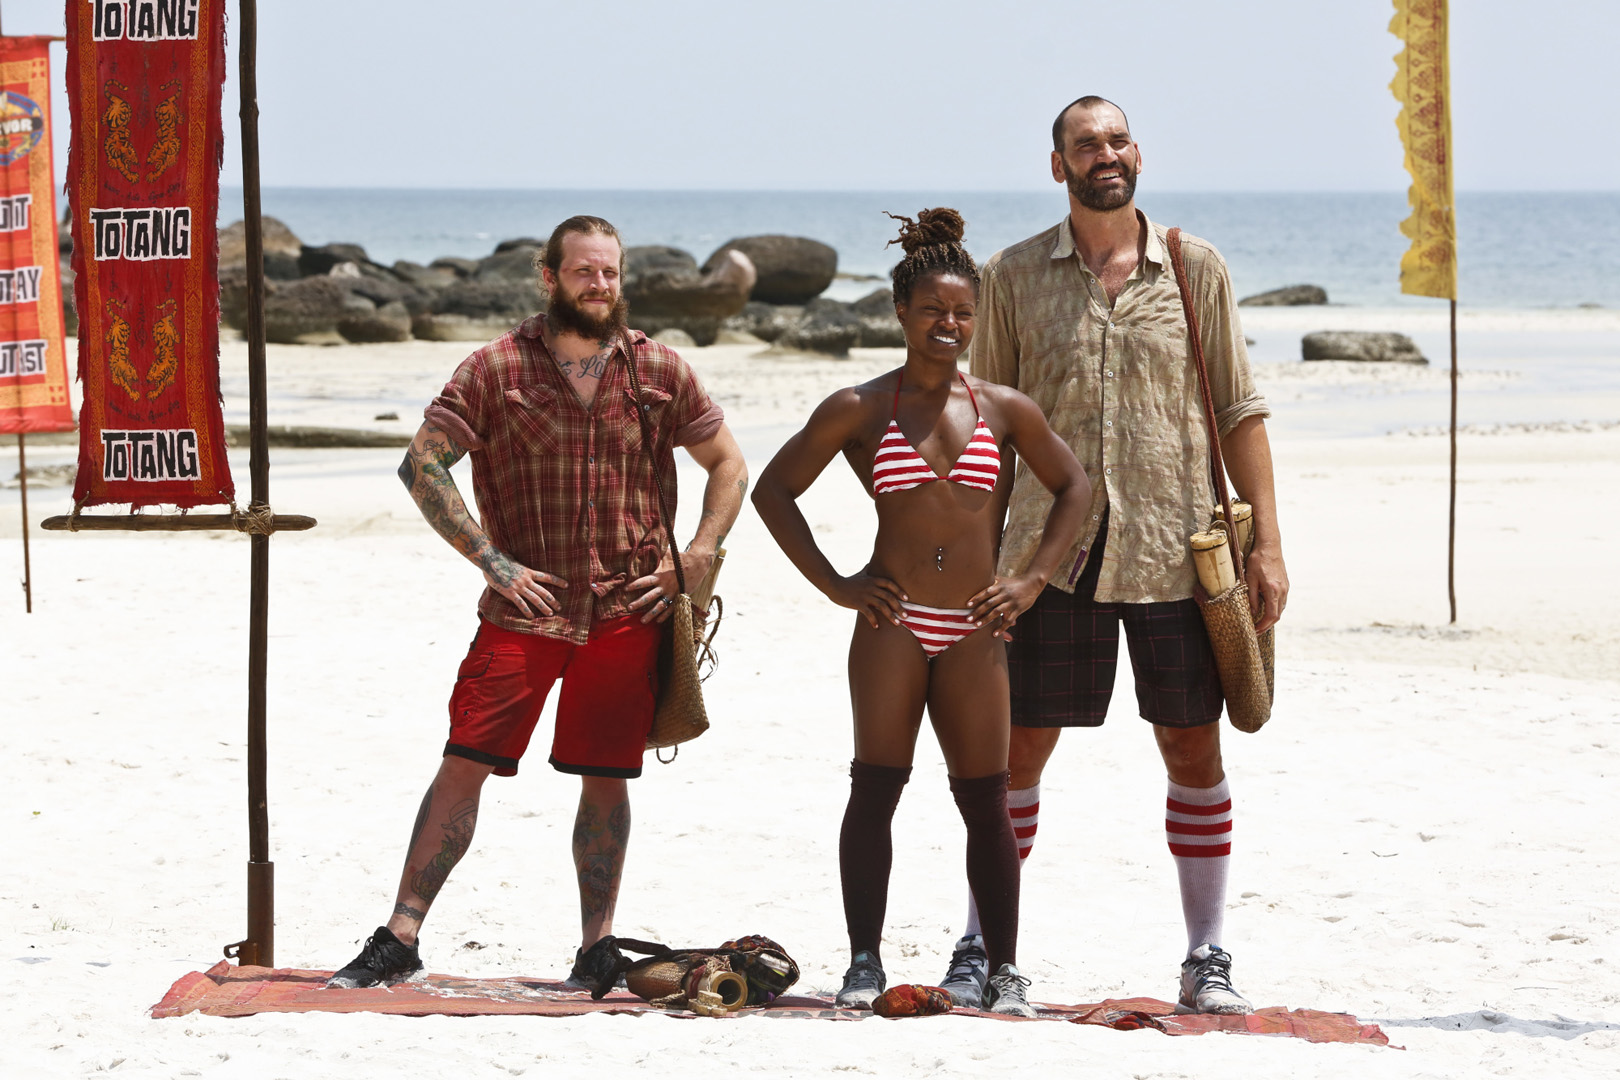 Jason, Cydney, and Scot stand as the final three Brawn Tribe members.